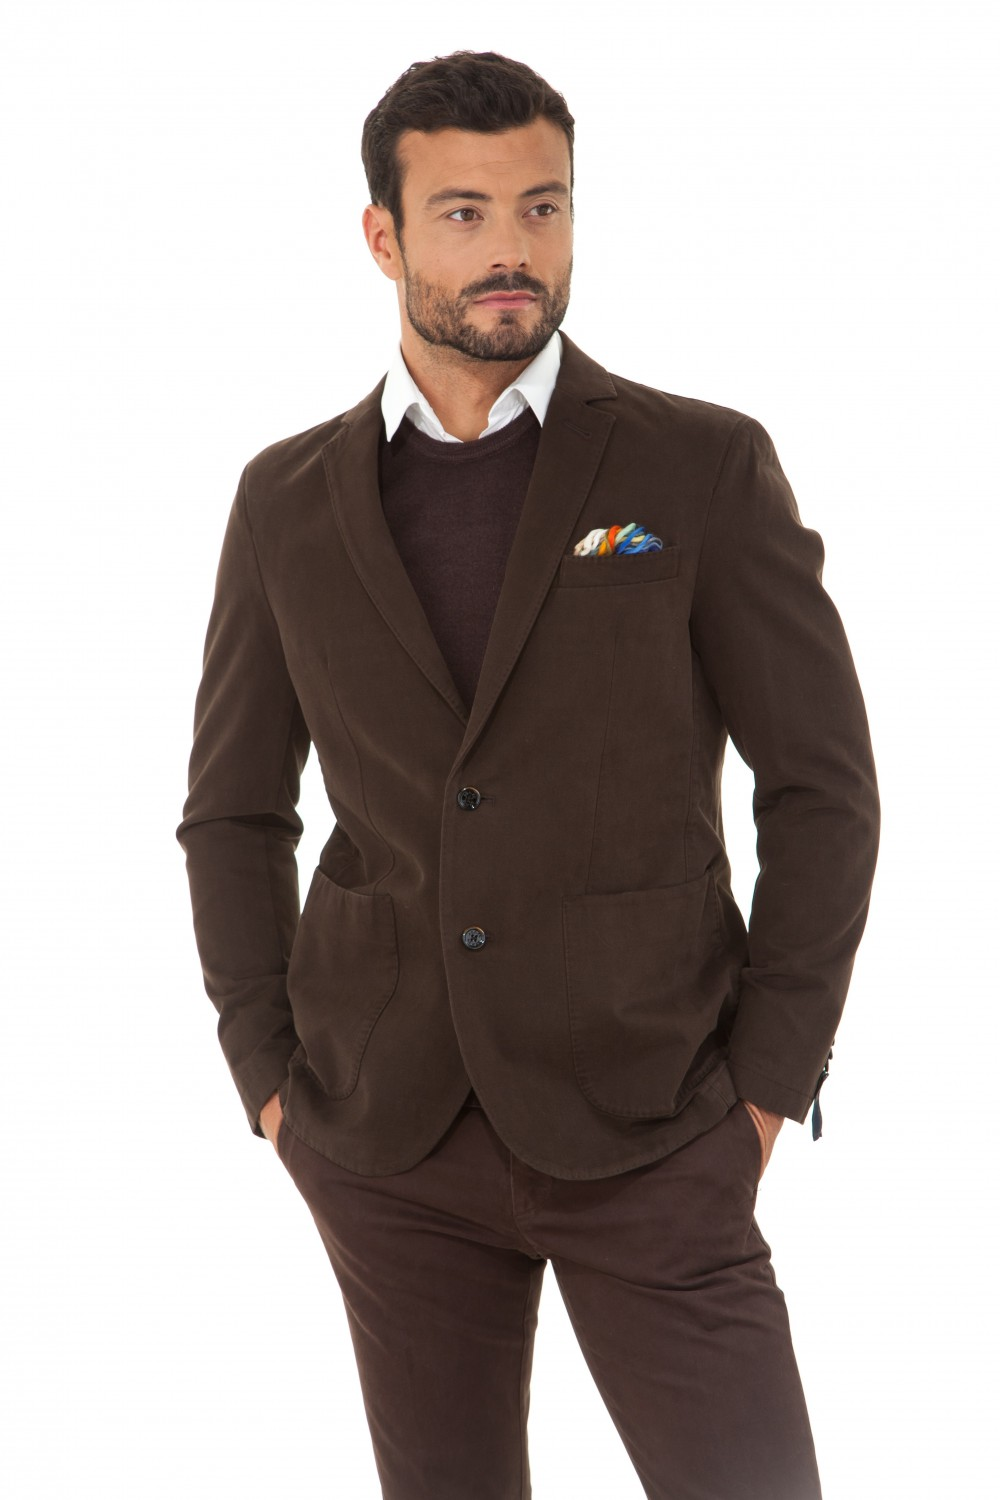 veste blazer marron pour homme at p co alan60 16 cesare nori depuis 1955. Black Bedroom Furniture Sets. Home Design Ideas